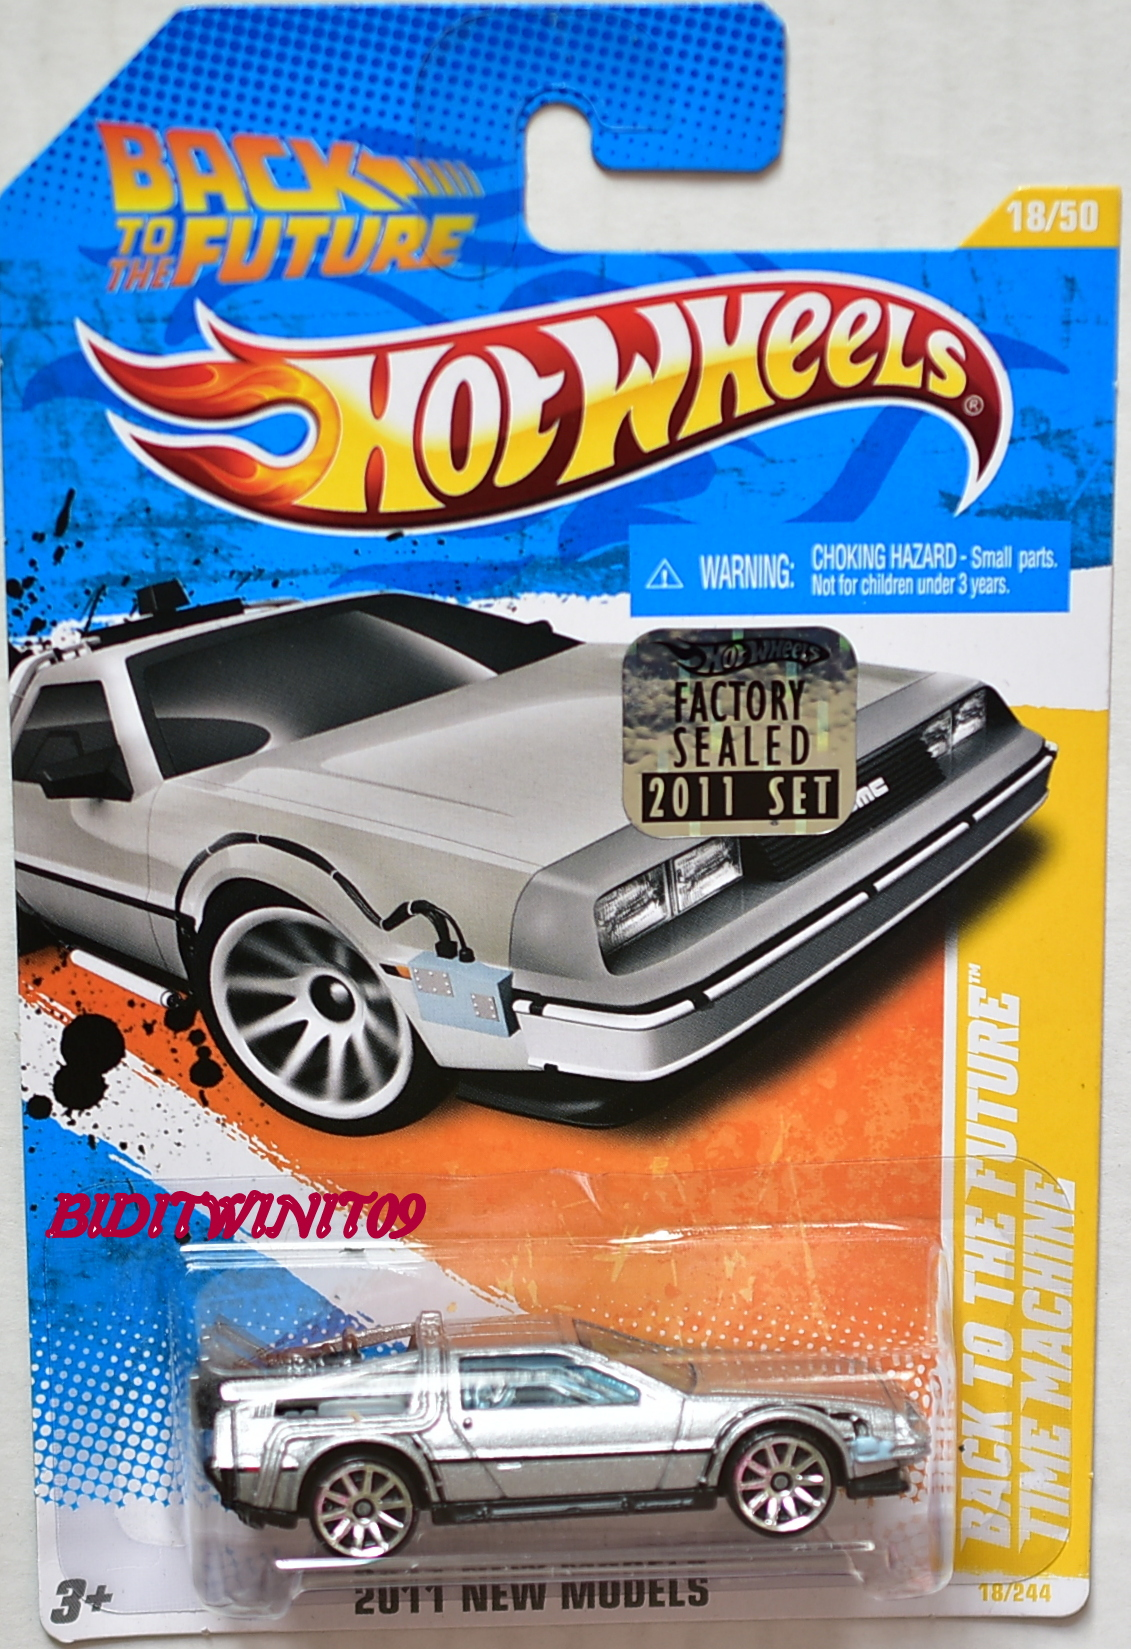 HOT WHEELS 2015 RLC PROMOTION MAIL IN DODGE CHALLENGER FUNNY CAR FACTORY SEALED